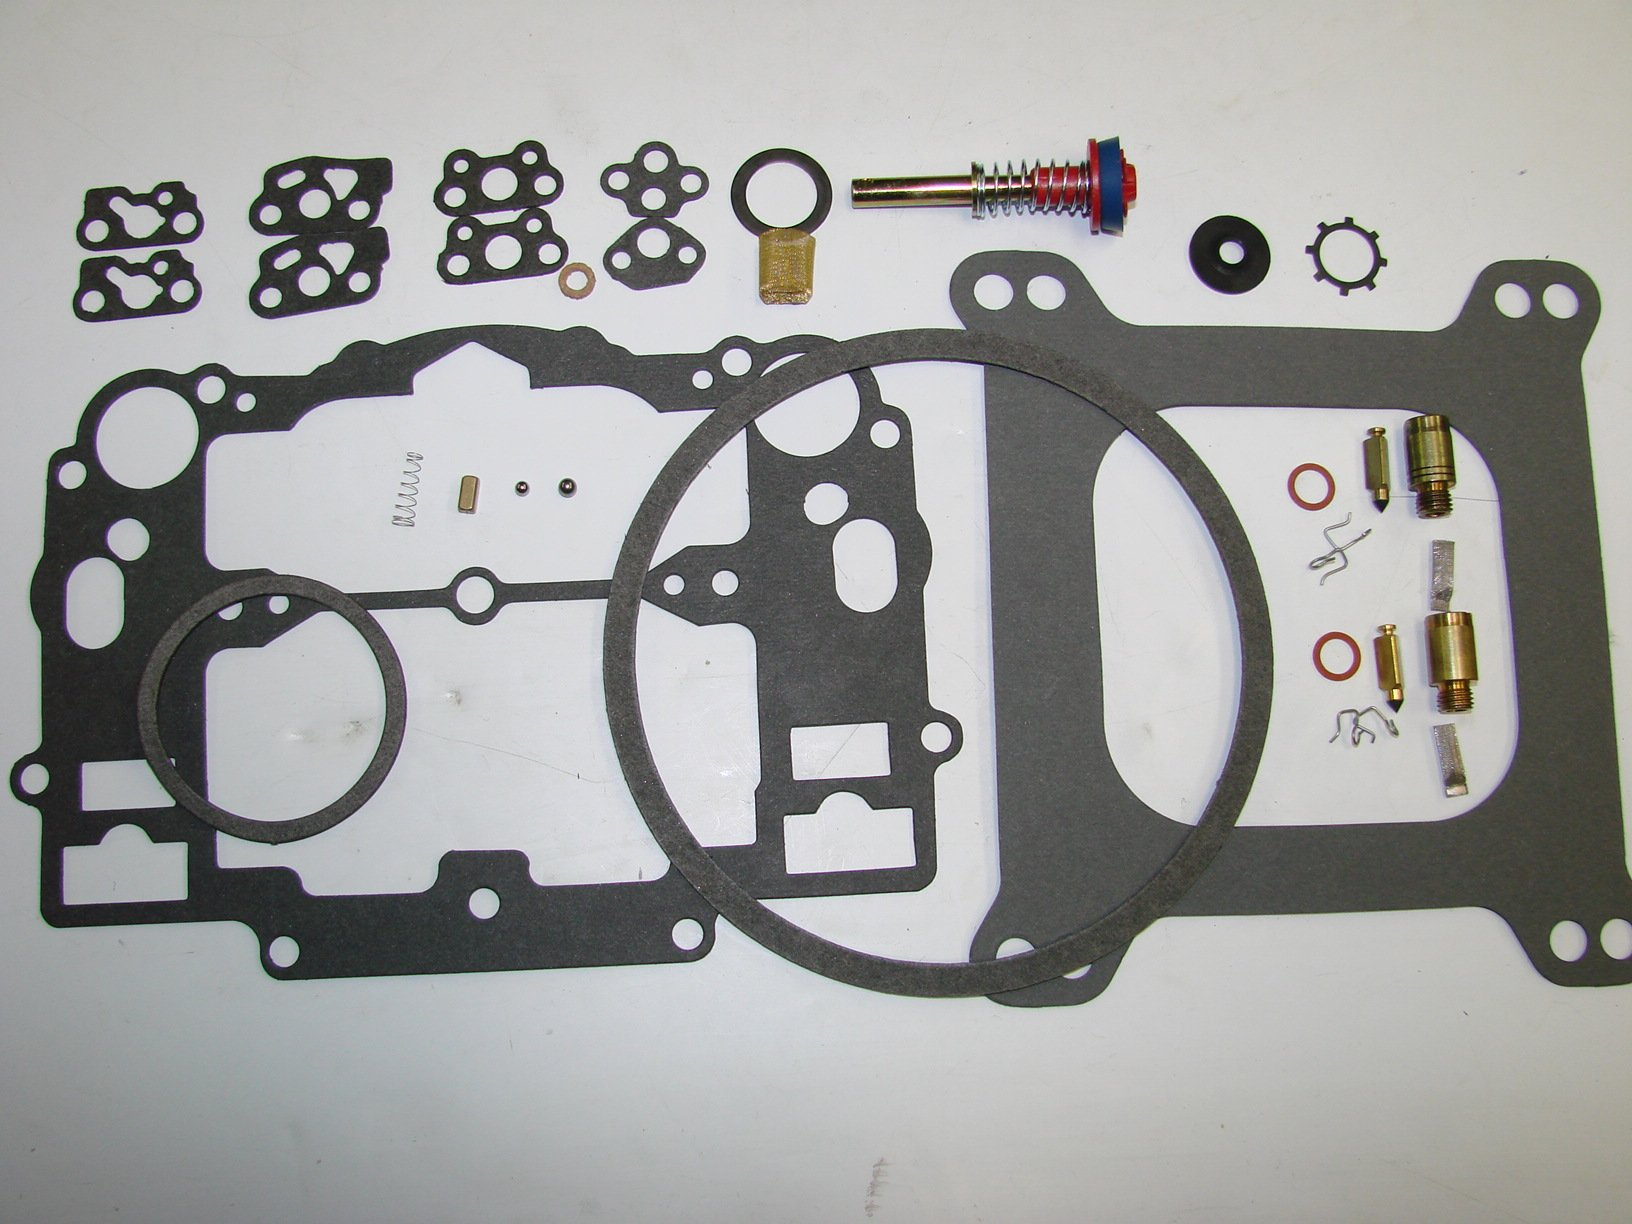 Edelbrock Carburetor Rebuild Kit By Allstate Carburetor by Allstate Carburetor